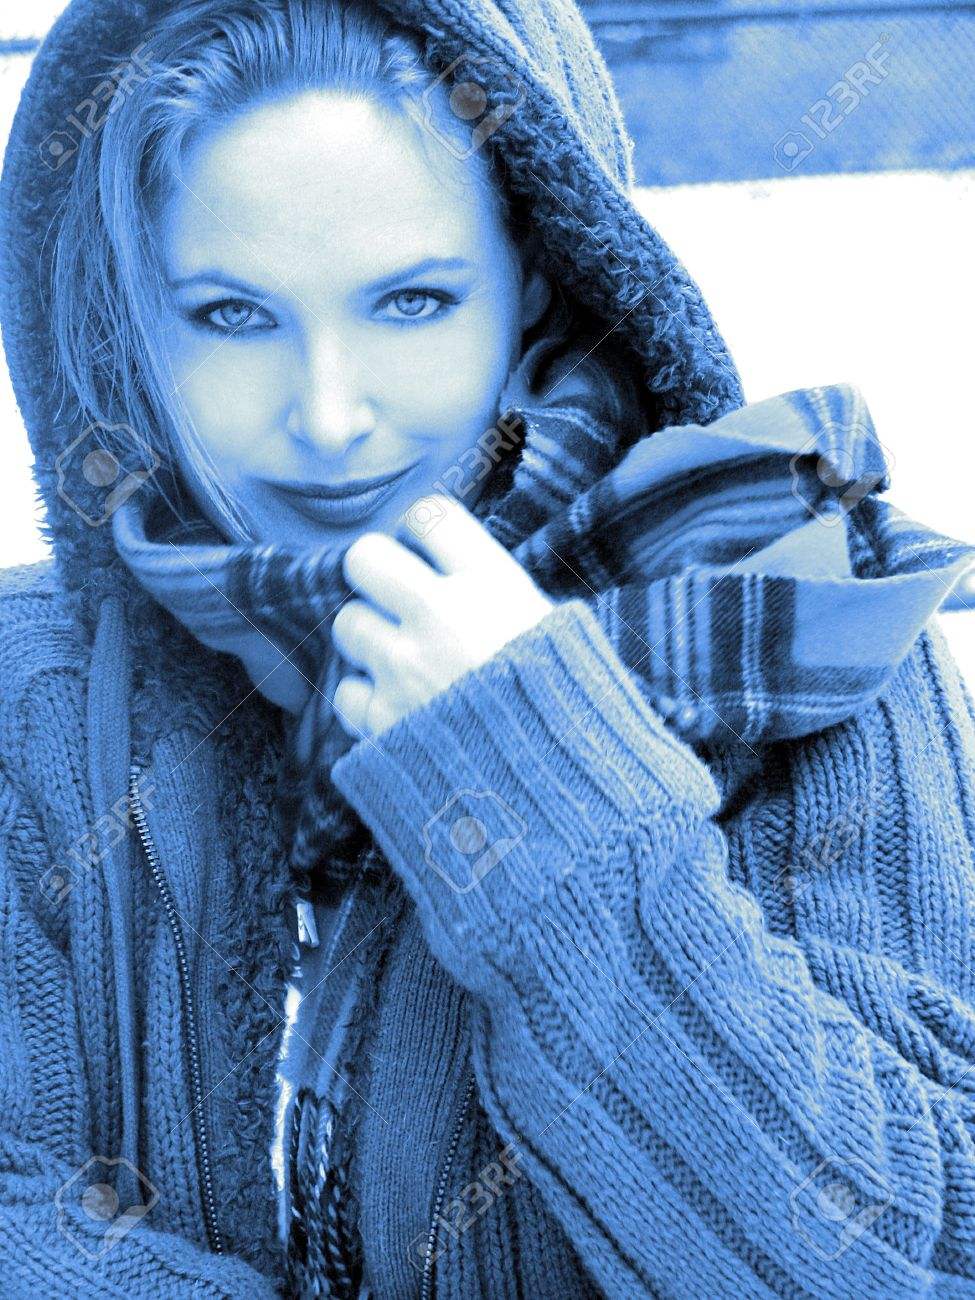 c3600142c9 Close-up of blonde girl smiling in sweater with scarf blue toned black and  white